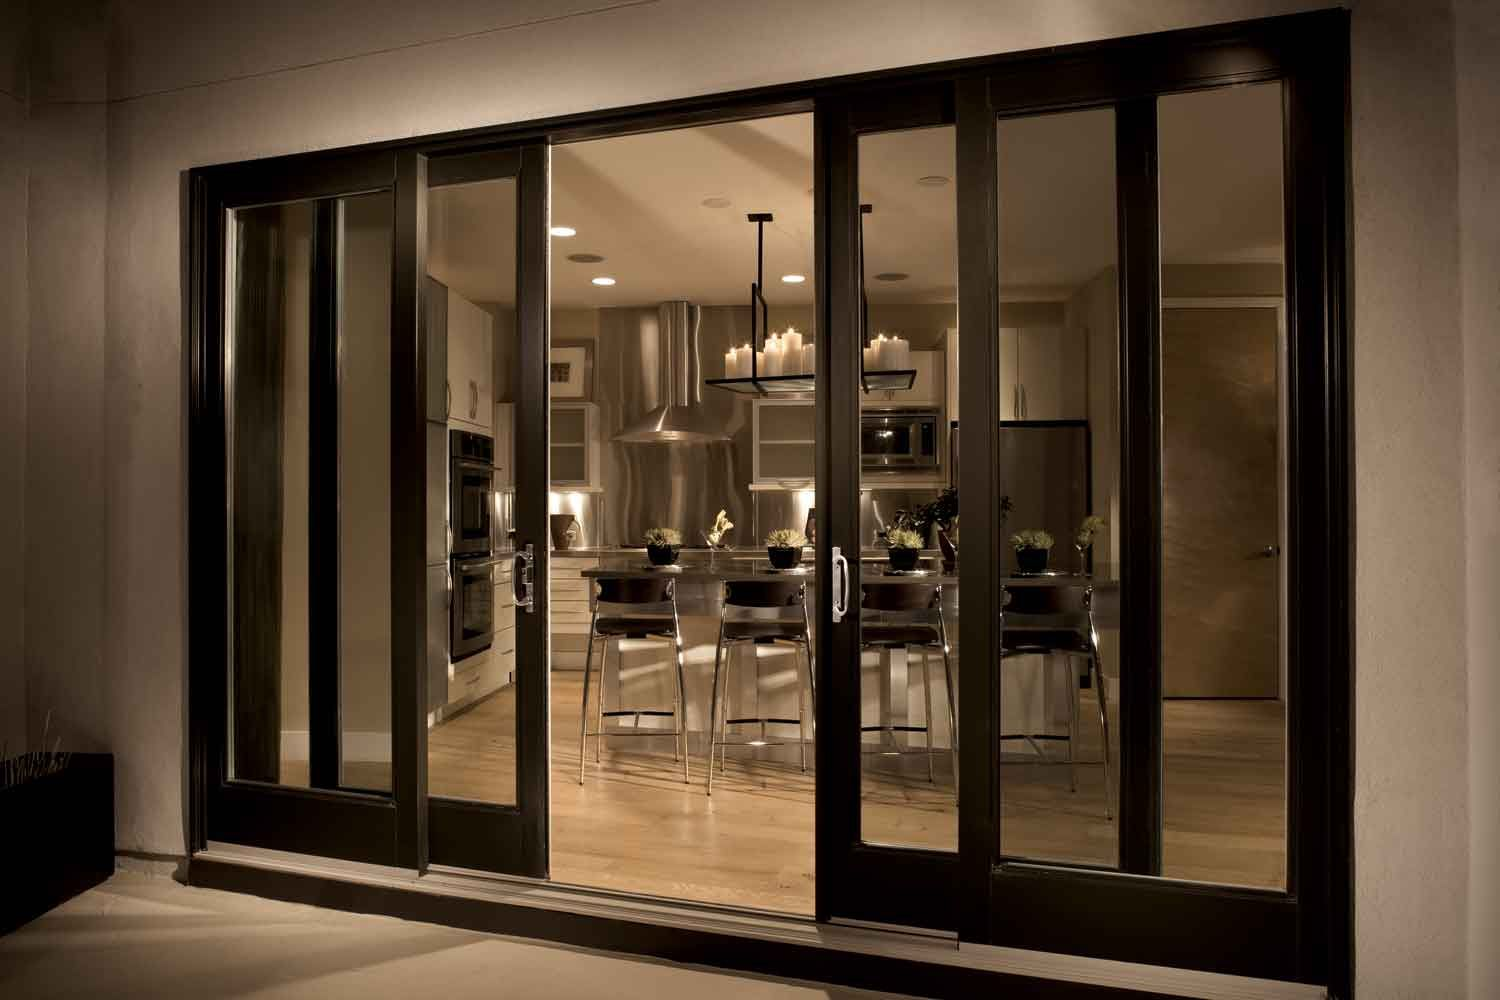 Kitchen Panels Doors Fiberglass Sliding Patio Doors 2 3 Or 4 Panel Configurations